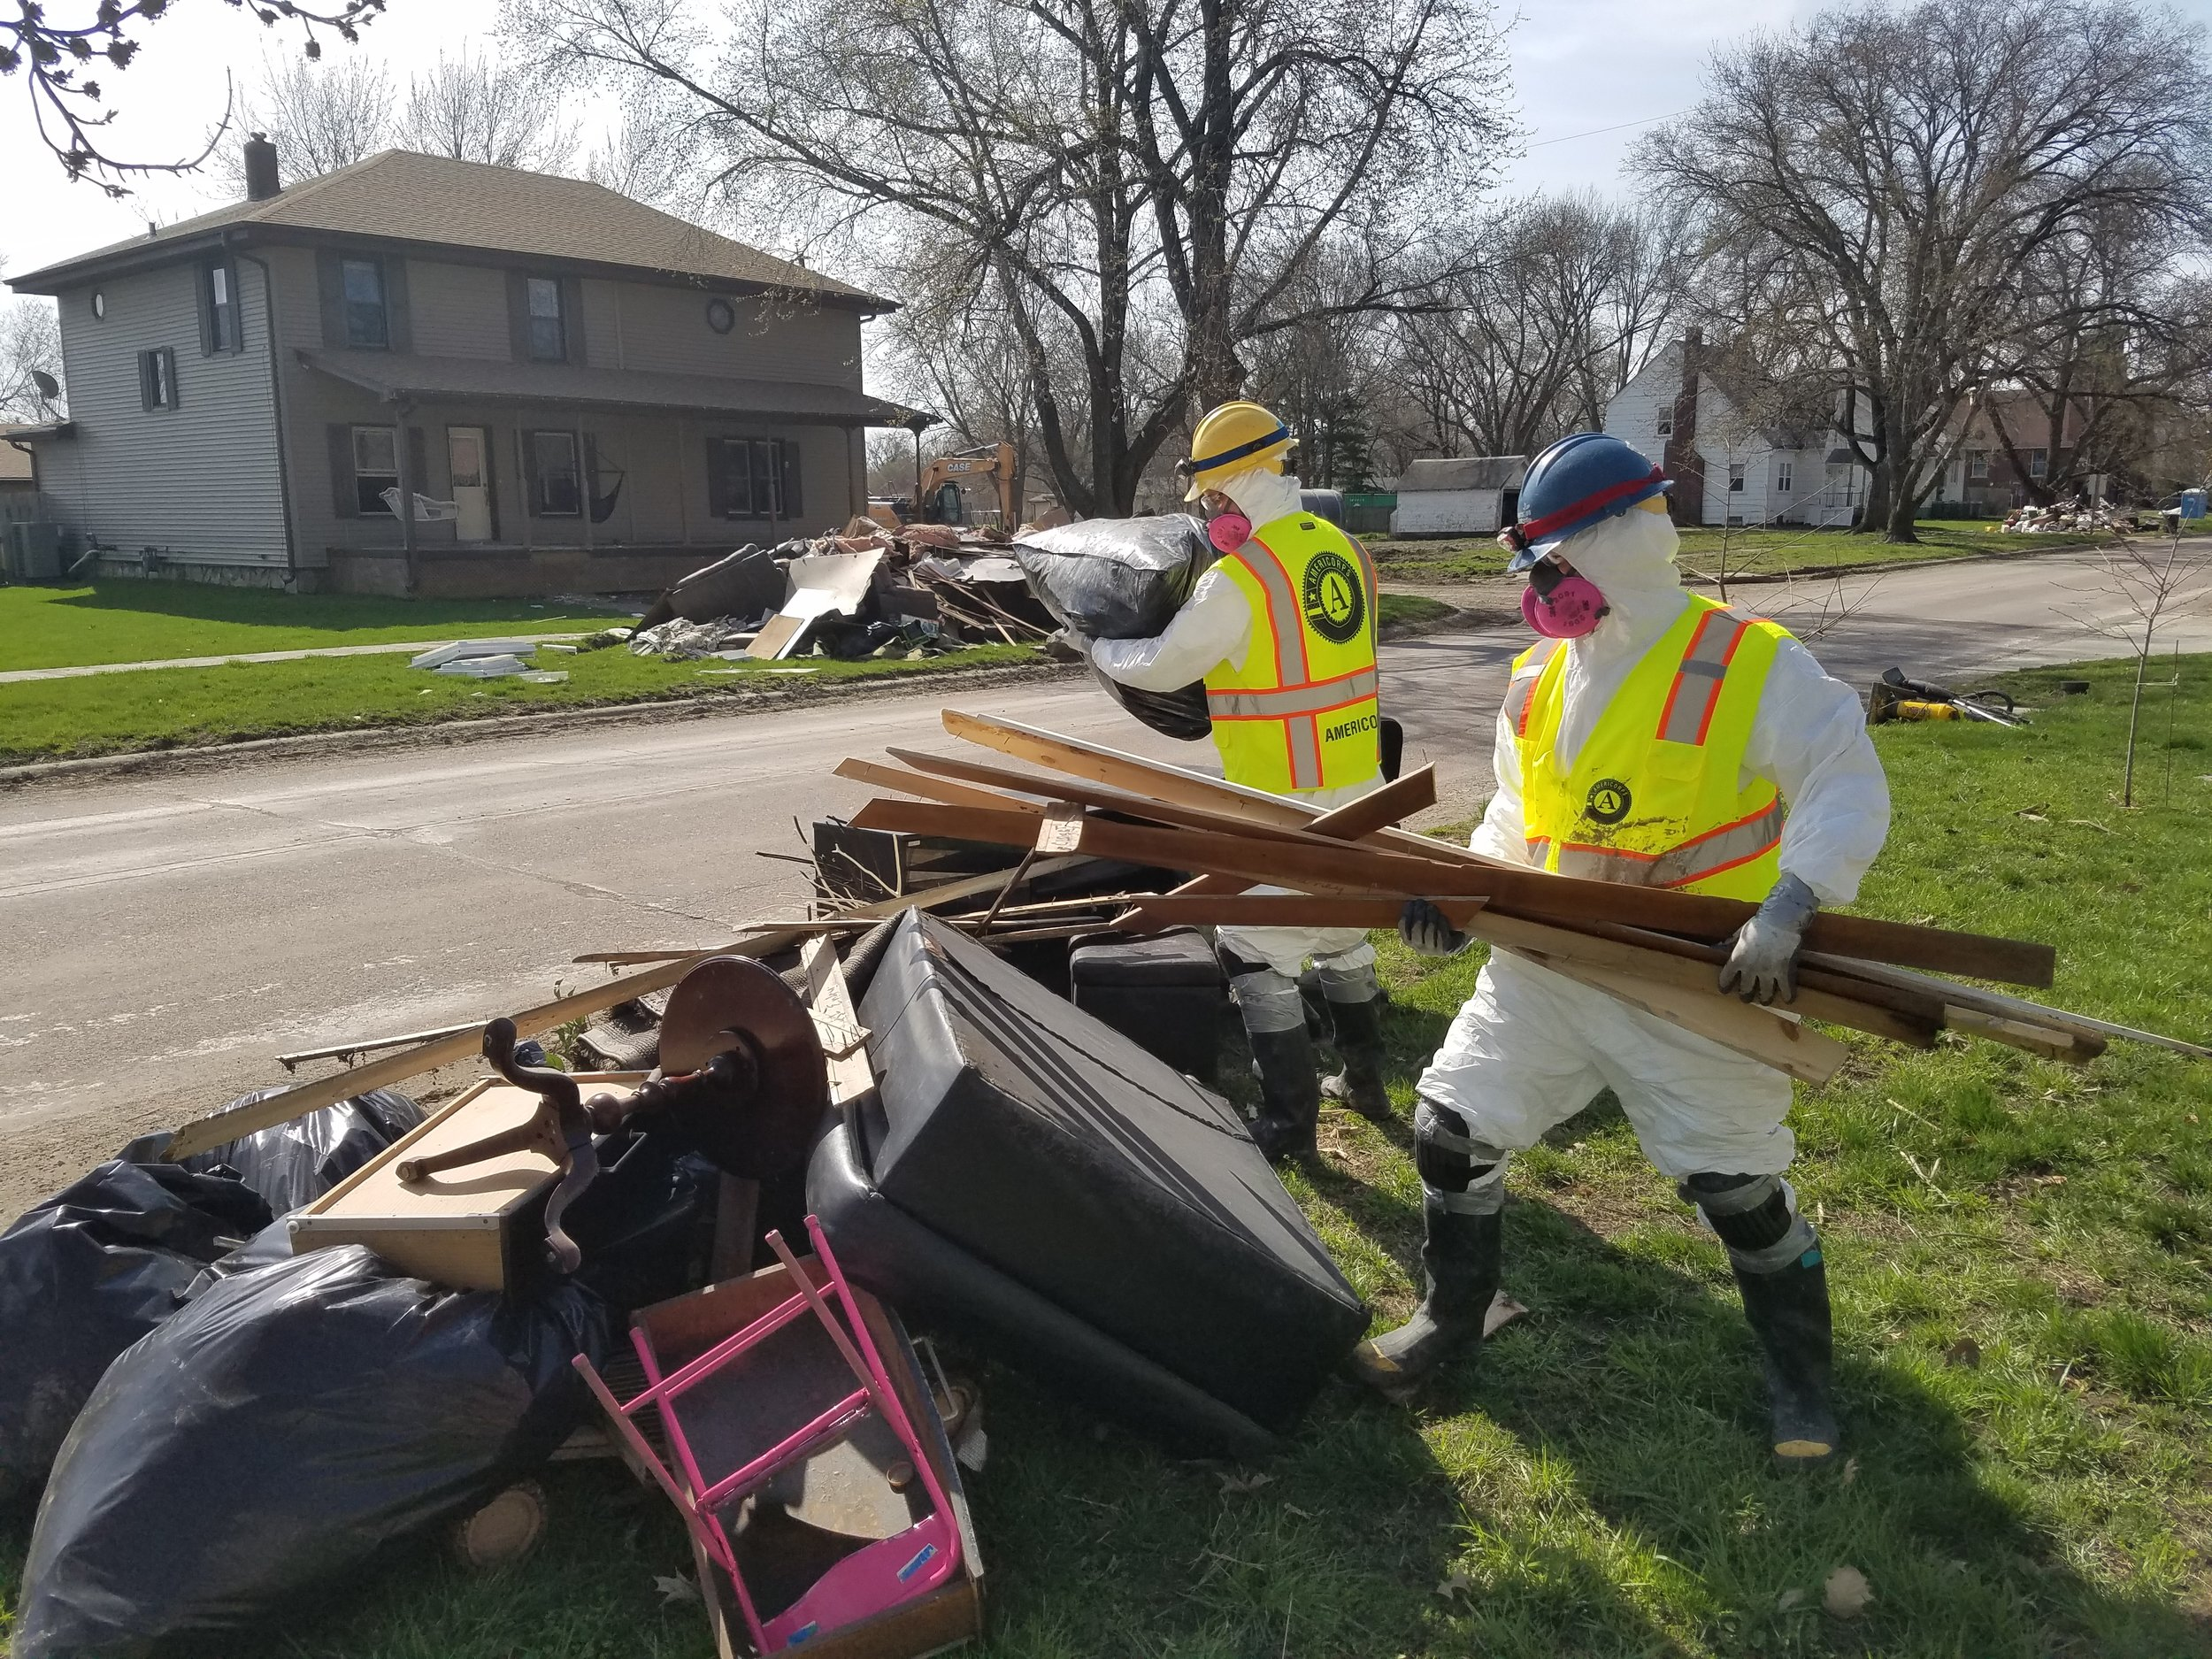 In April 2019, Conservation Corps Minnesota & Iowa AmeriCorps members helped residents remove debris and personal items from homes damaged by flooding in Hamburg, Iowa.